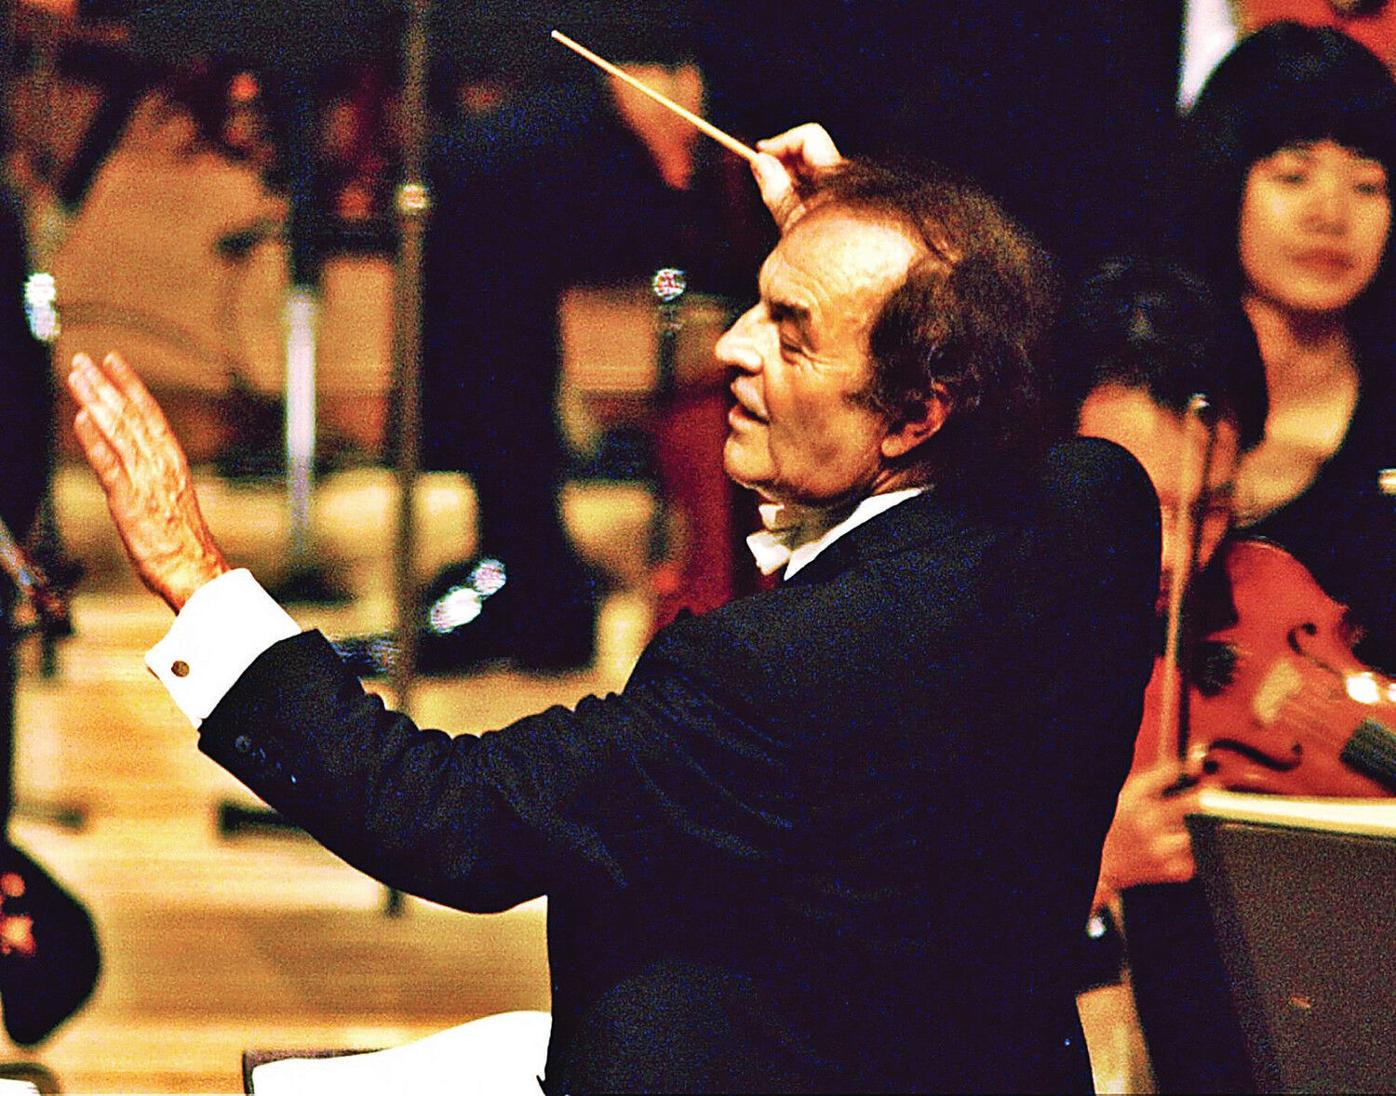 BSO cuts ties with conductor Dutoit, a longtime fixture at Tanglewood